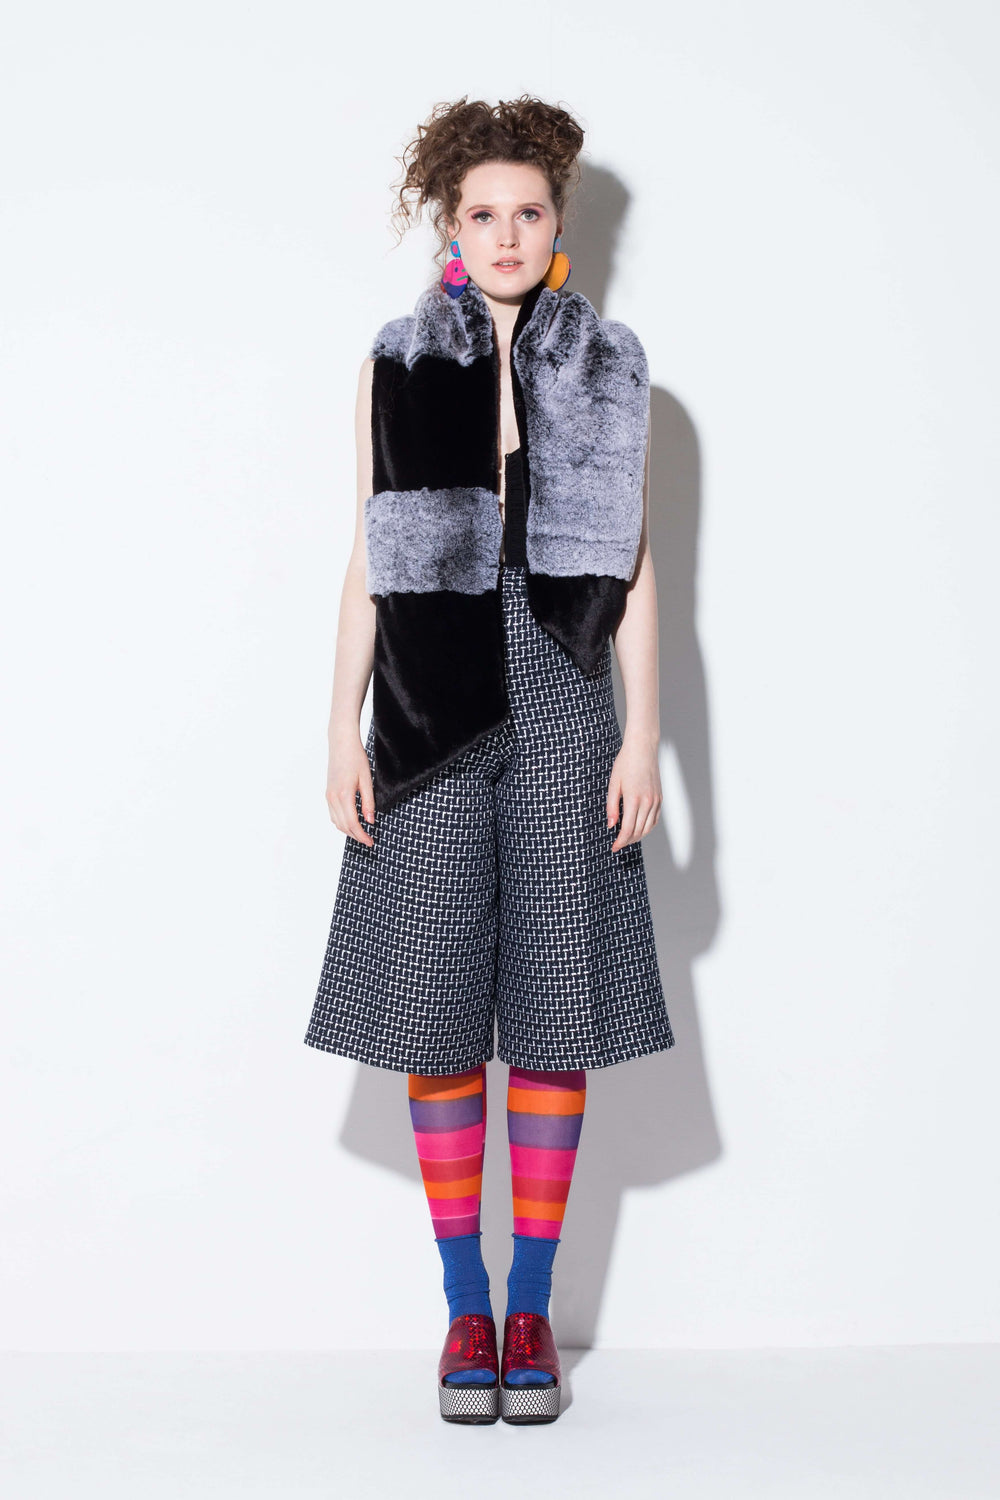 suitcase of memories| a fun faux fur scarf accessory in colour blocks from jin & yin styled with hand-pained tights